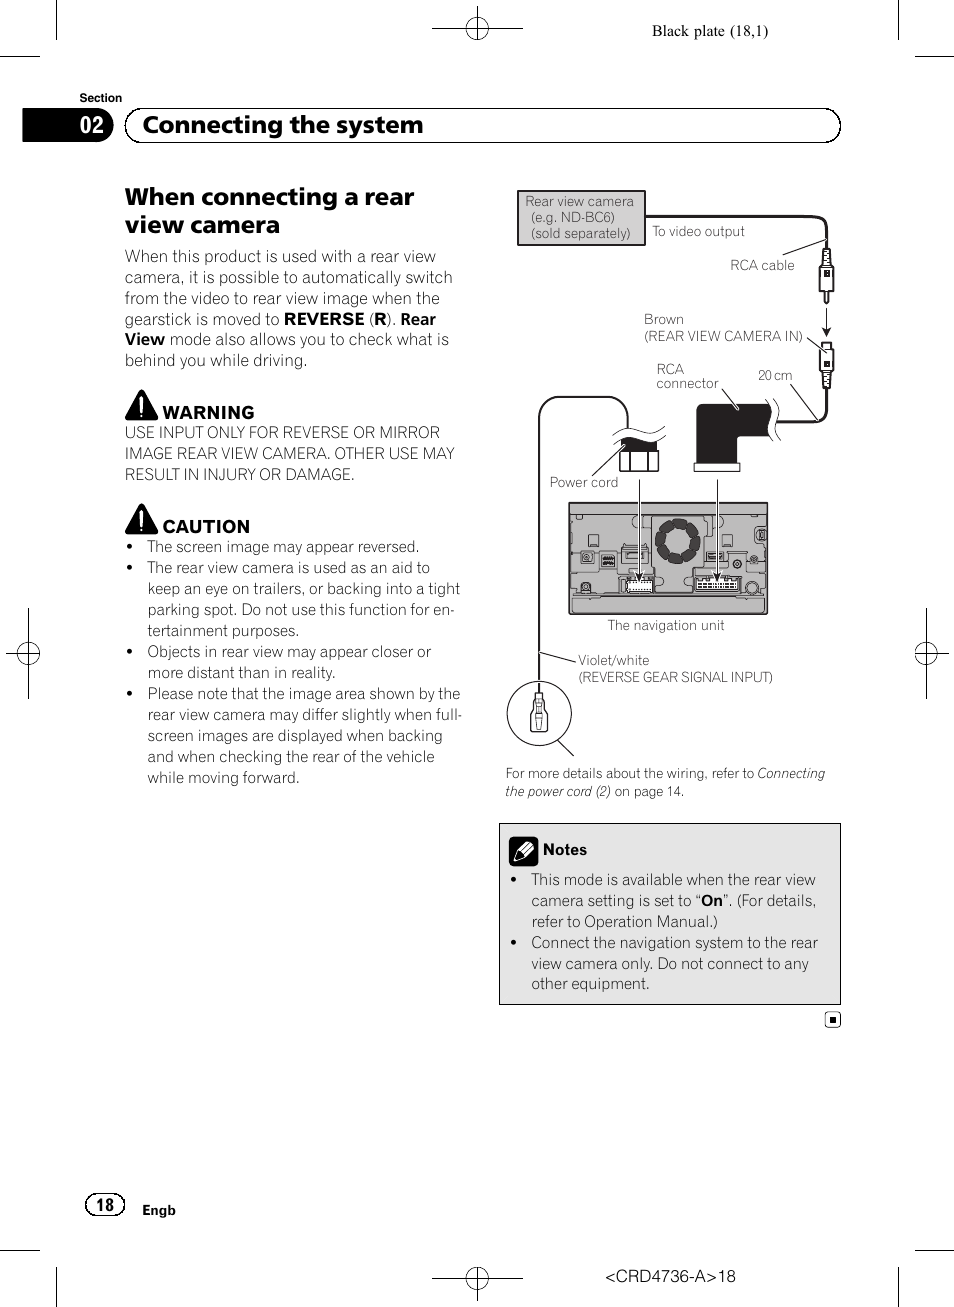 When Connecting A Rear View Camera 02 The System Reversing Wiring Diagram Page 2 Pioneer Avic F50bt User Manual 18 180